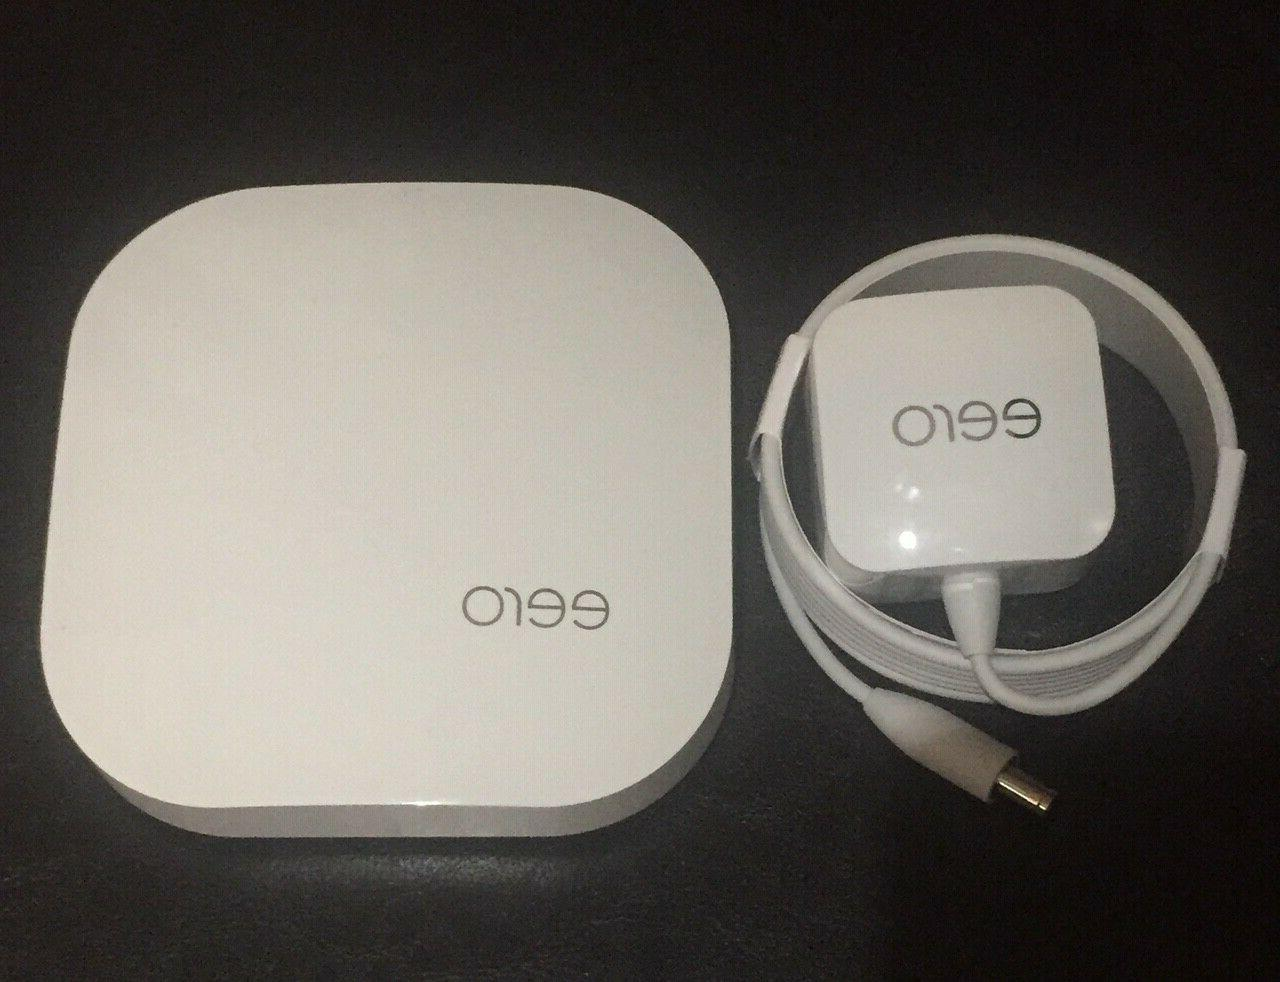 home wifi system model a010001 1st generation